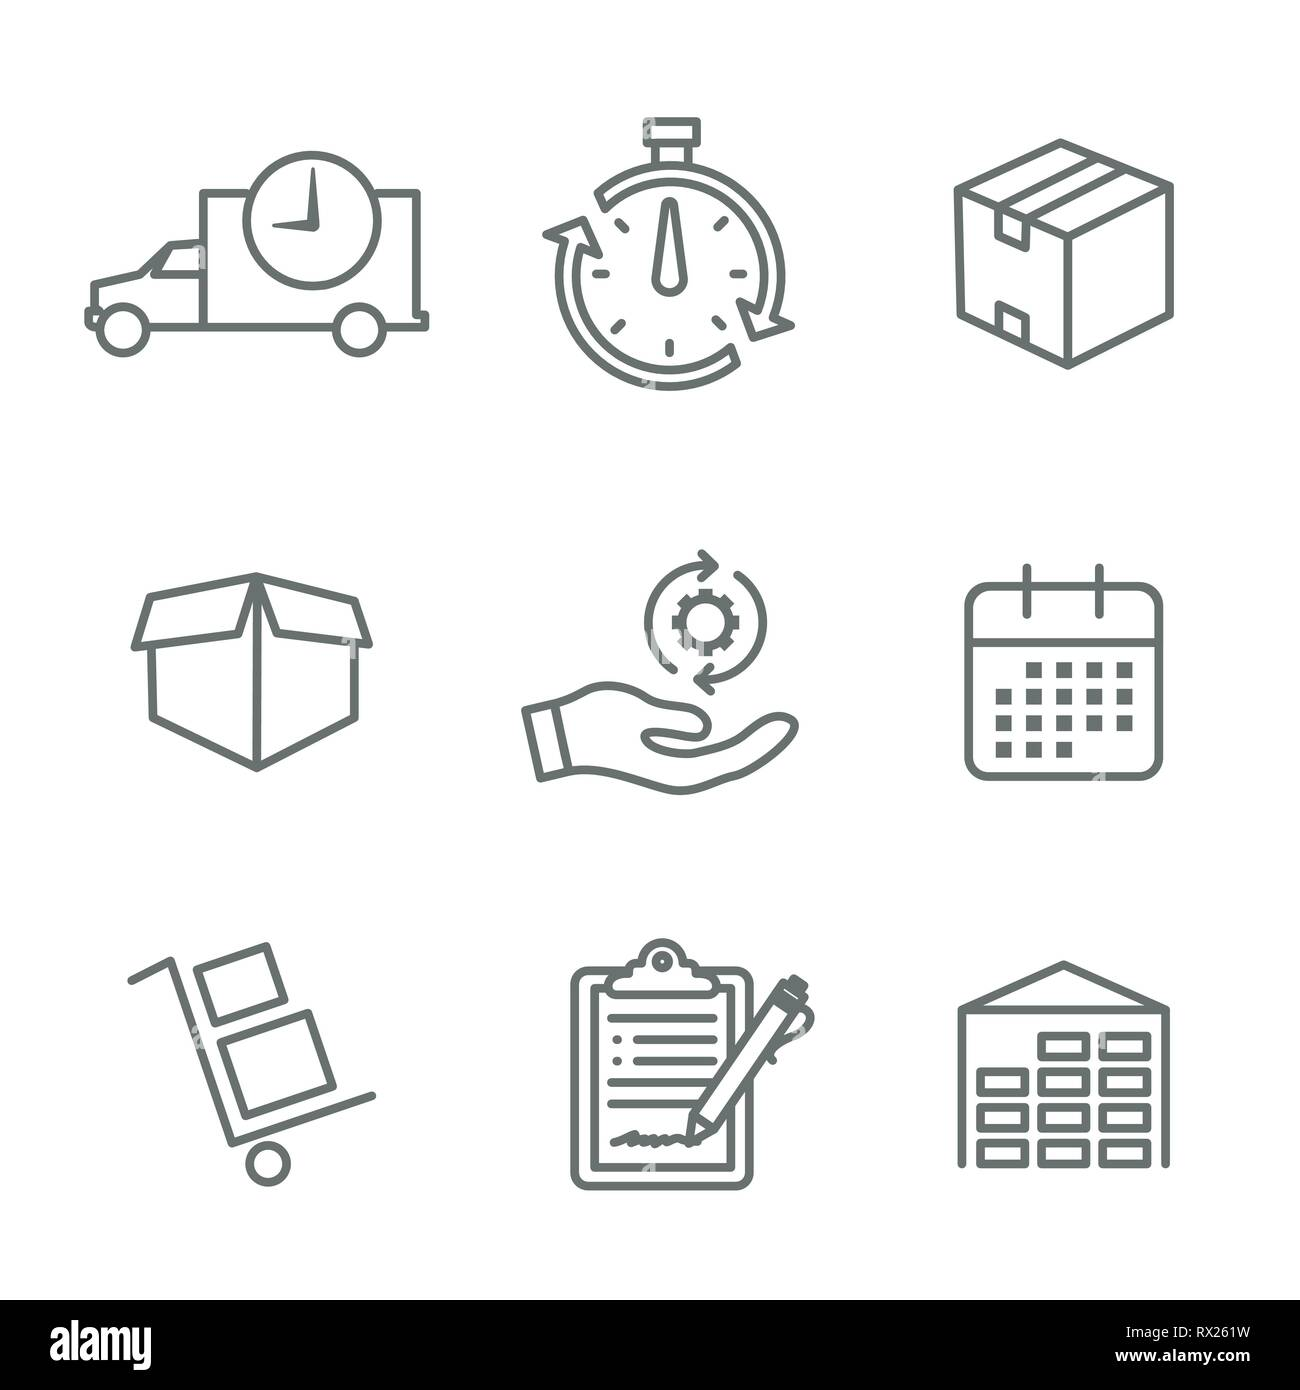 Shipping and Receiving Icon Set w Boxes, Warehouse, checklist, etc Stock Vector